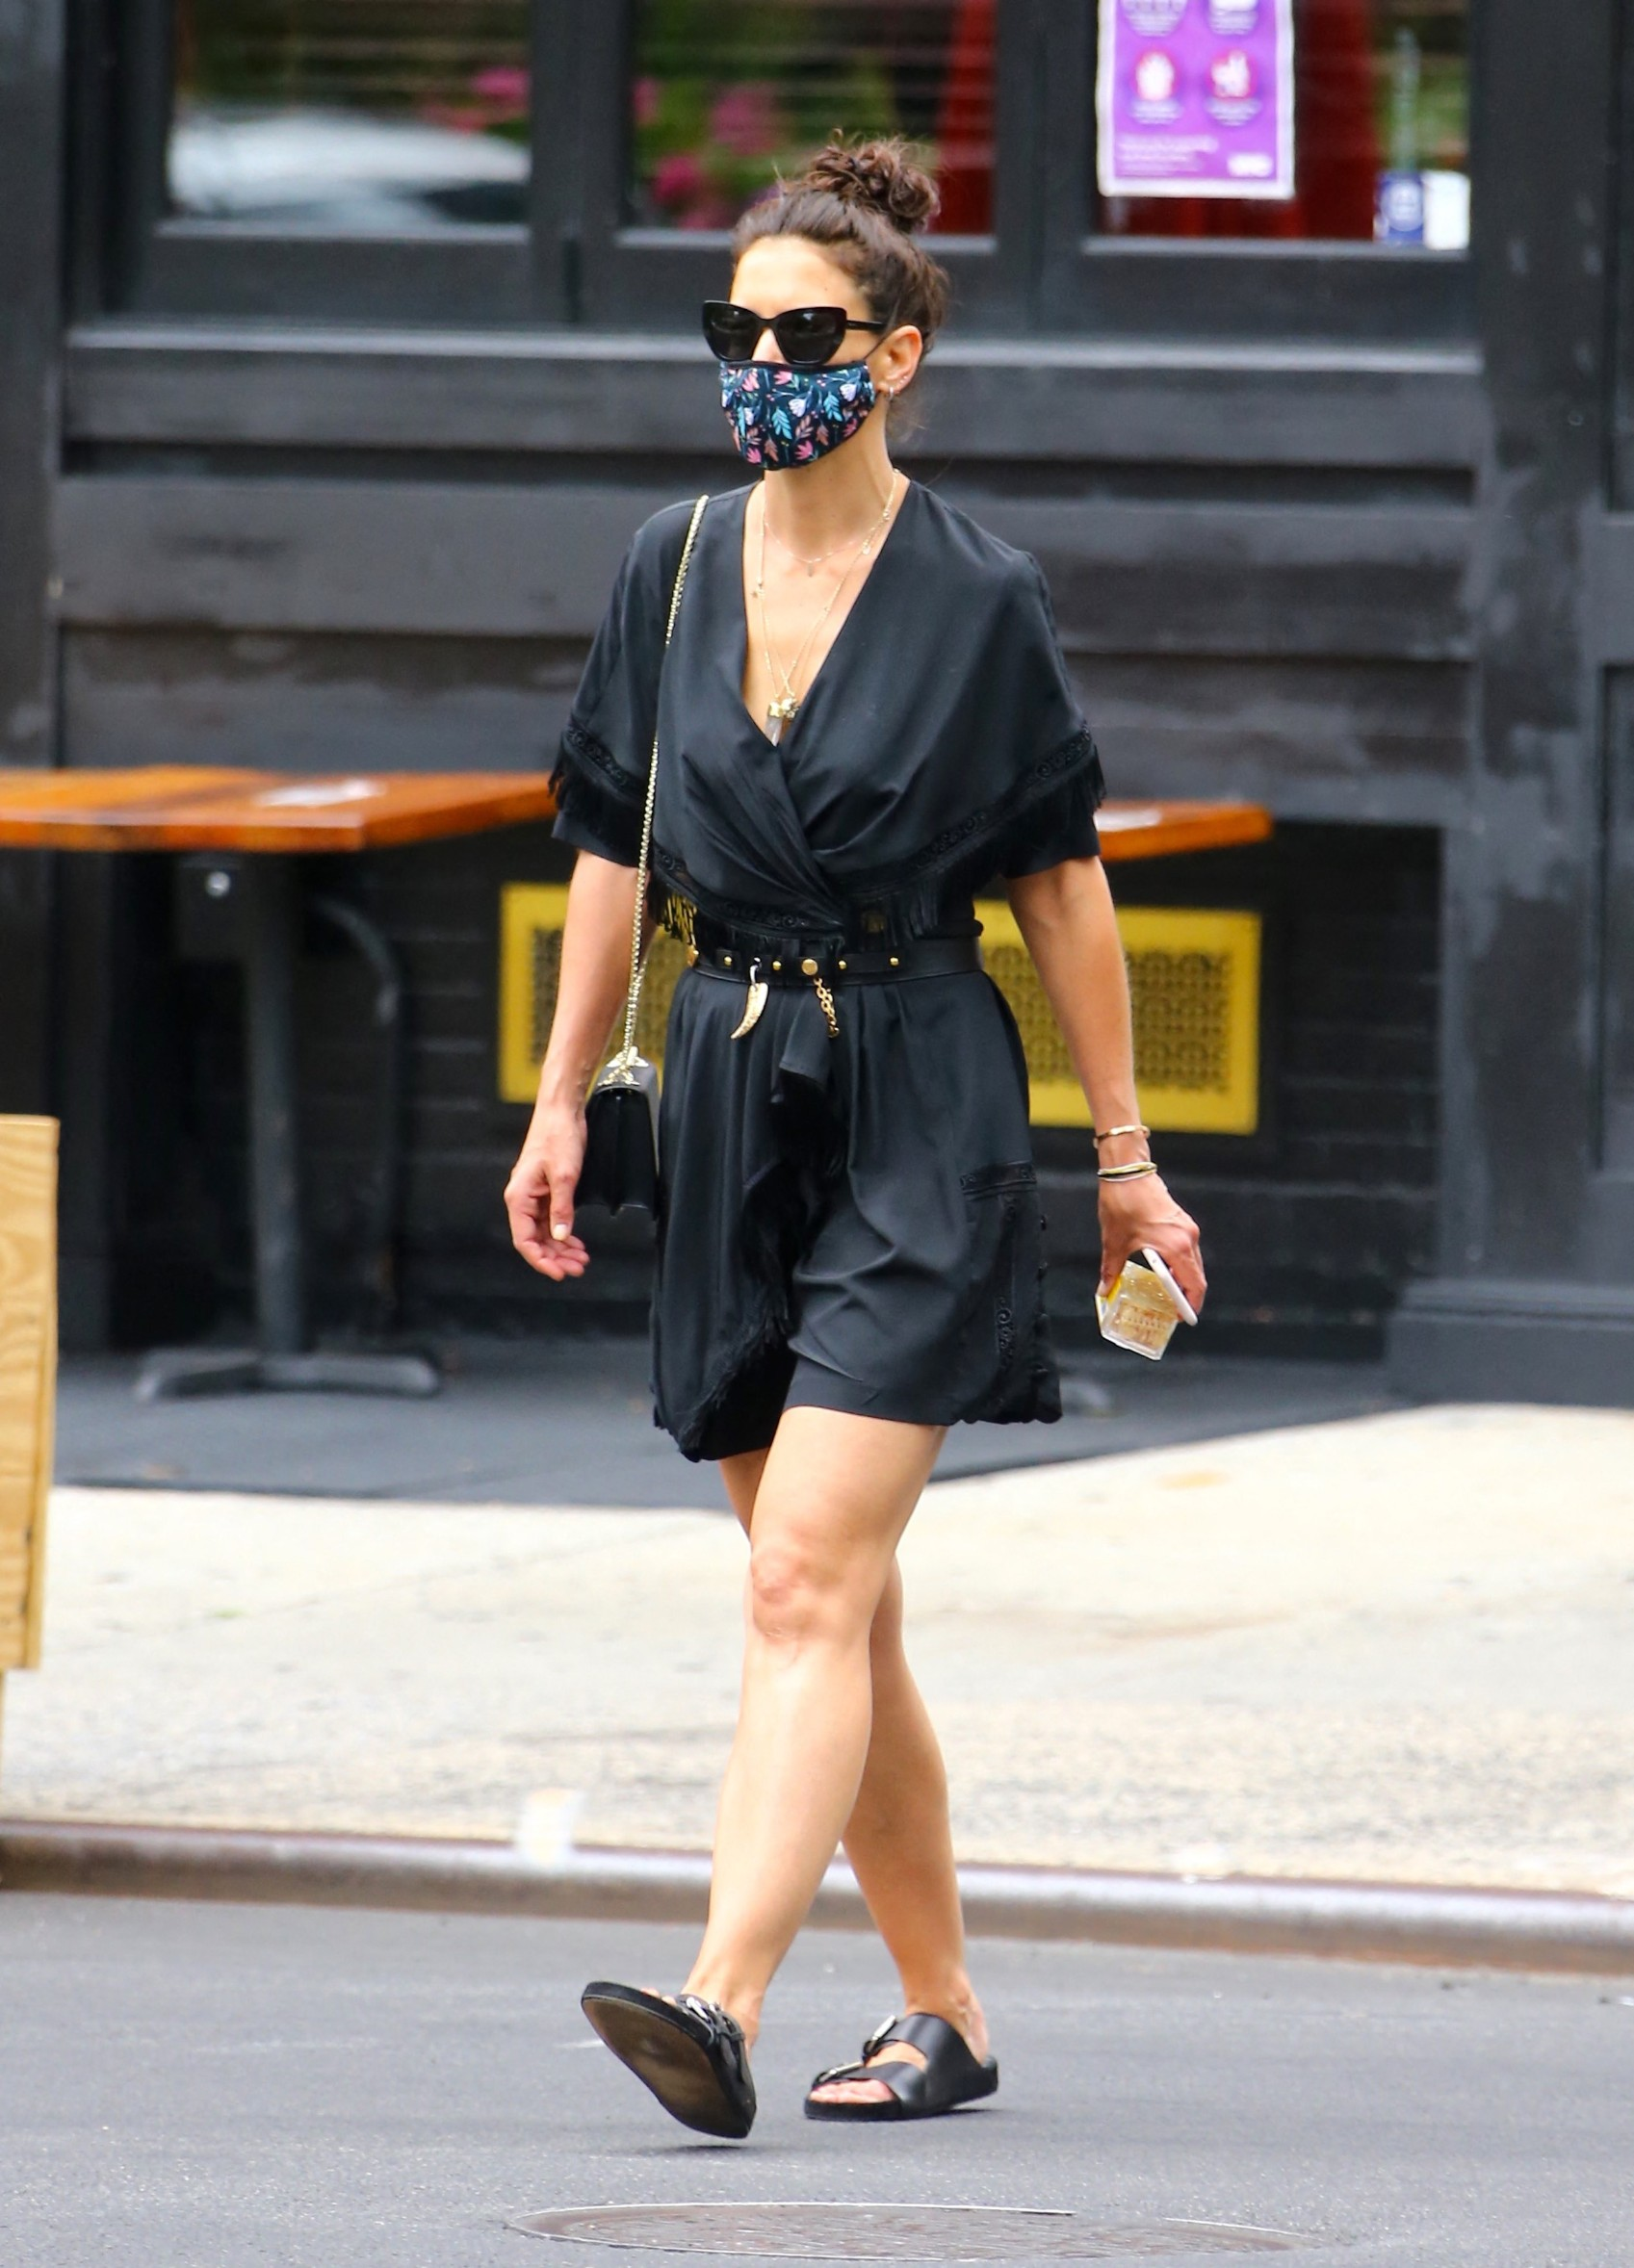 U.S actress Katie Holmes with face mask is walking in Soho, New York on July 15, 2020.,Image: 543562580, License: Rights-managed, Restrictions: , Model Release: no, Credit line: Dylan Travis/ABACA / Abaca Press / Profimedia